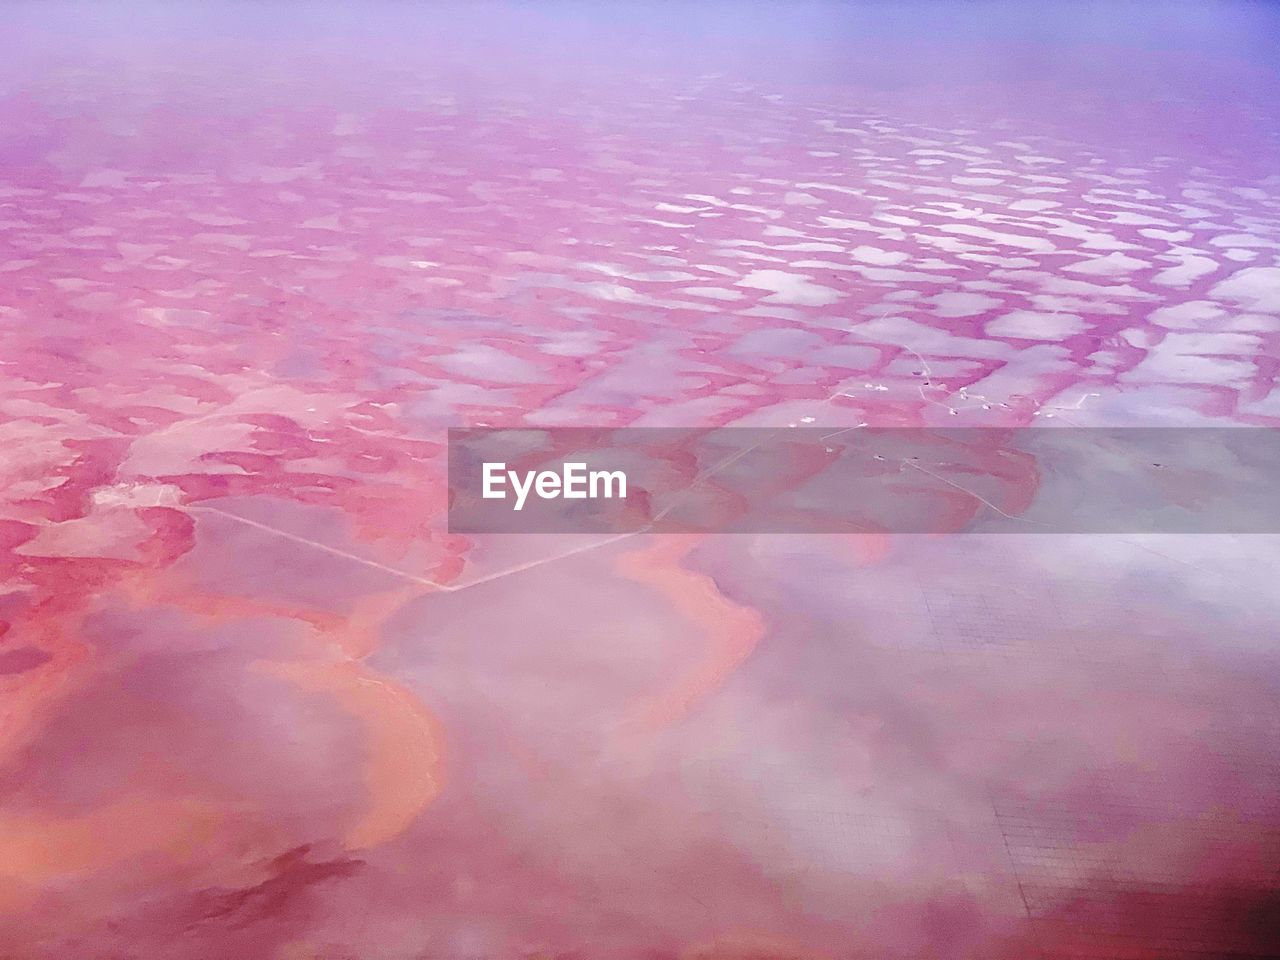 pink color, water, nature, no people, beauty in nature, day, tranquility, full frame, backgrounds, close-up, outdoors, sea, waterfront, reflection, pattern, scenics - nature, frozen, high angle view, softness, marine